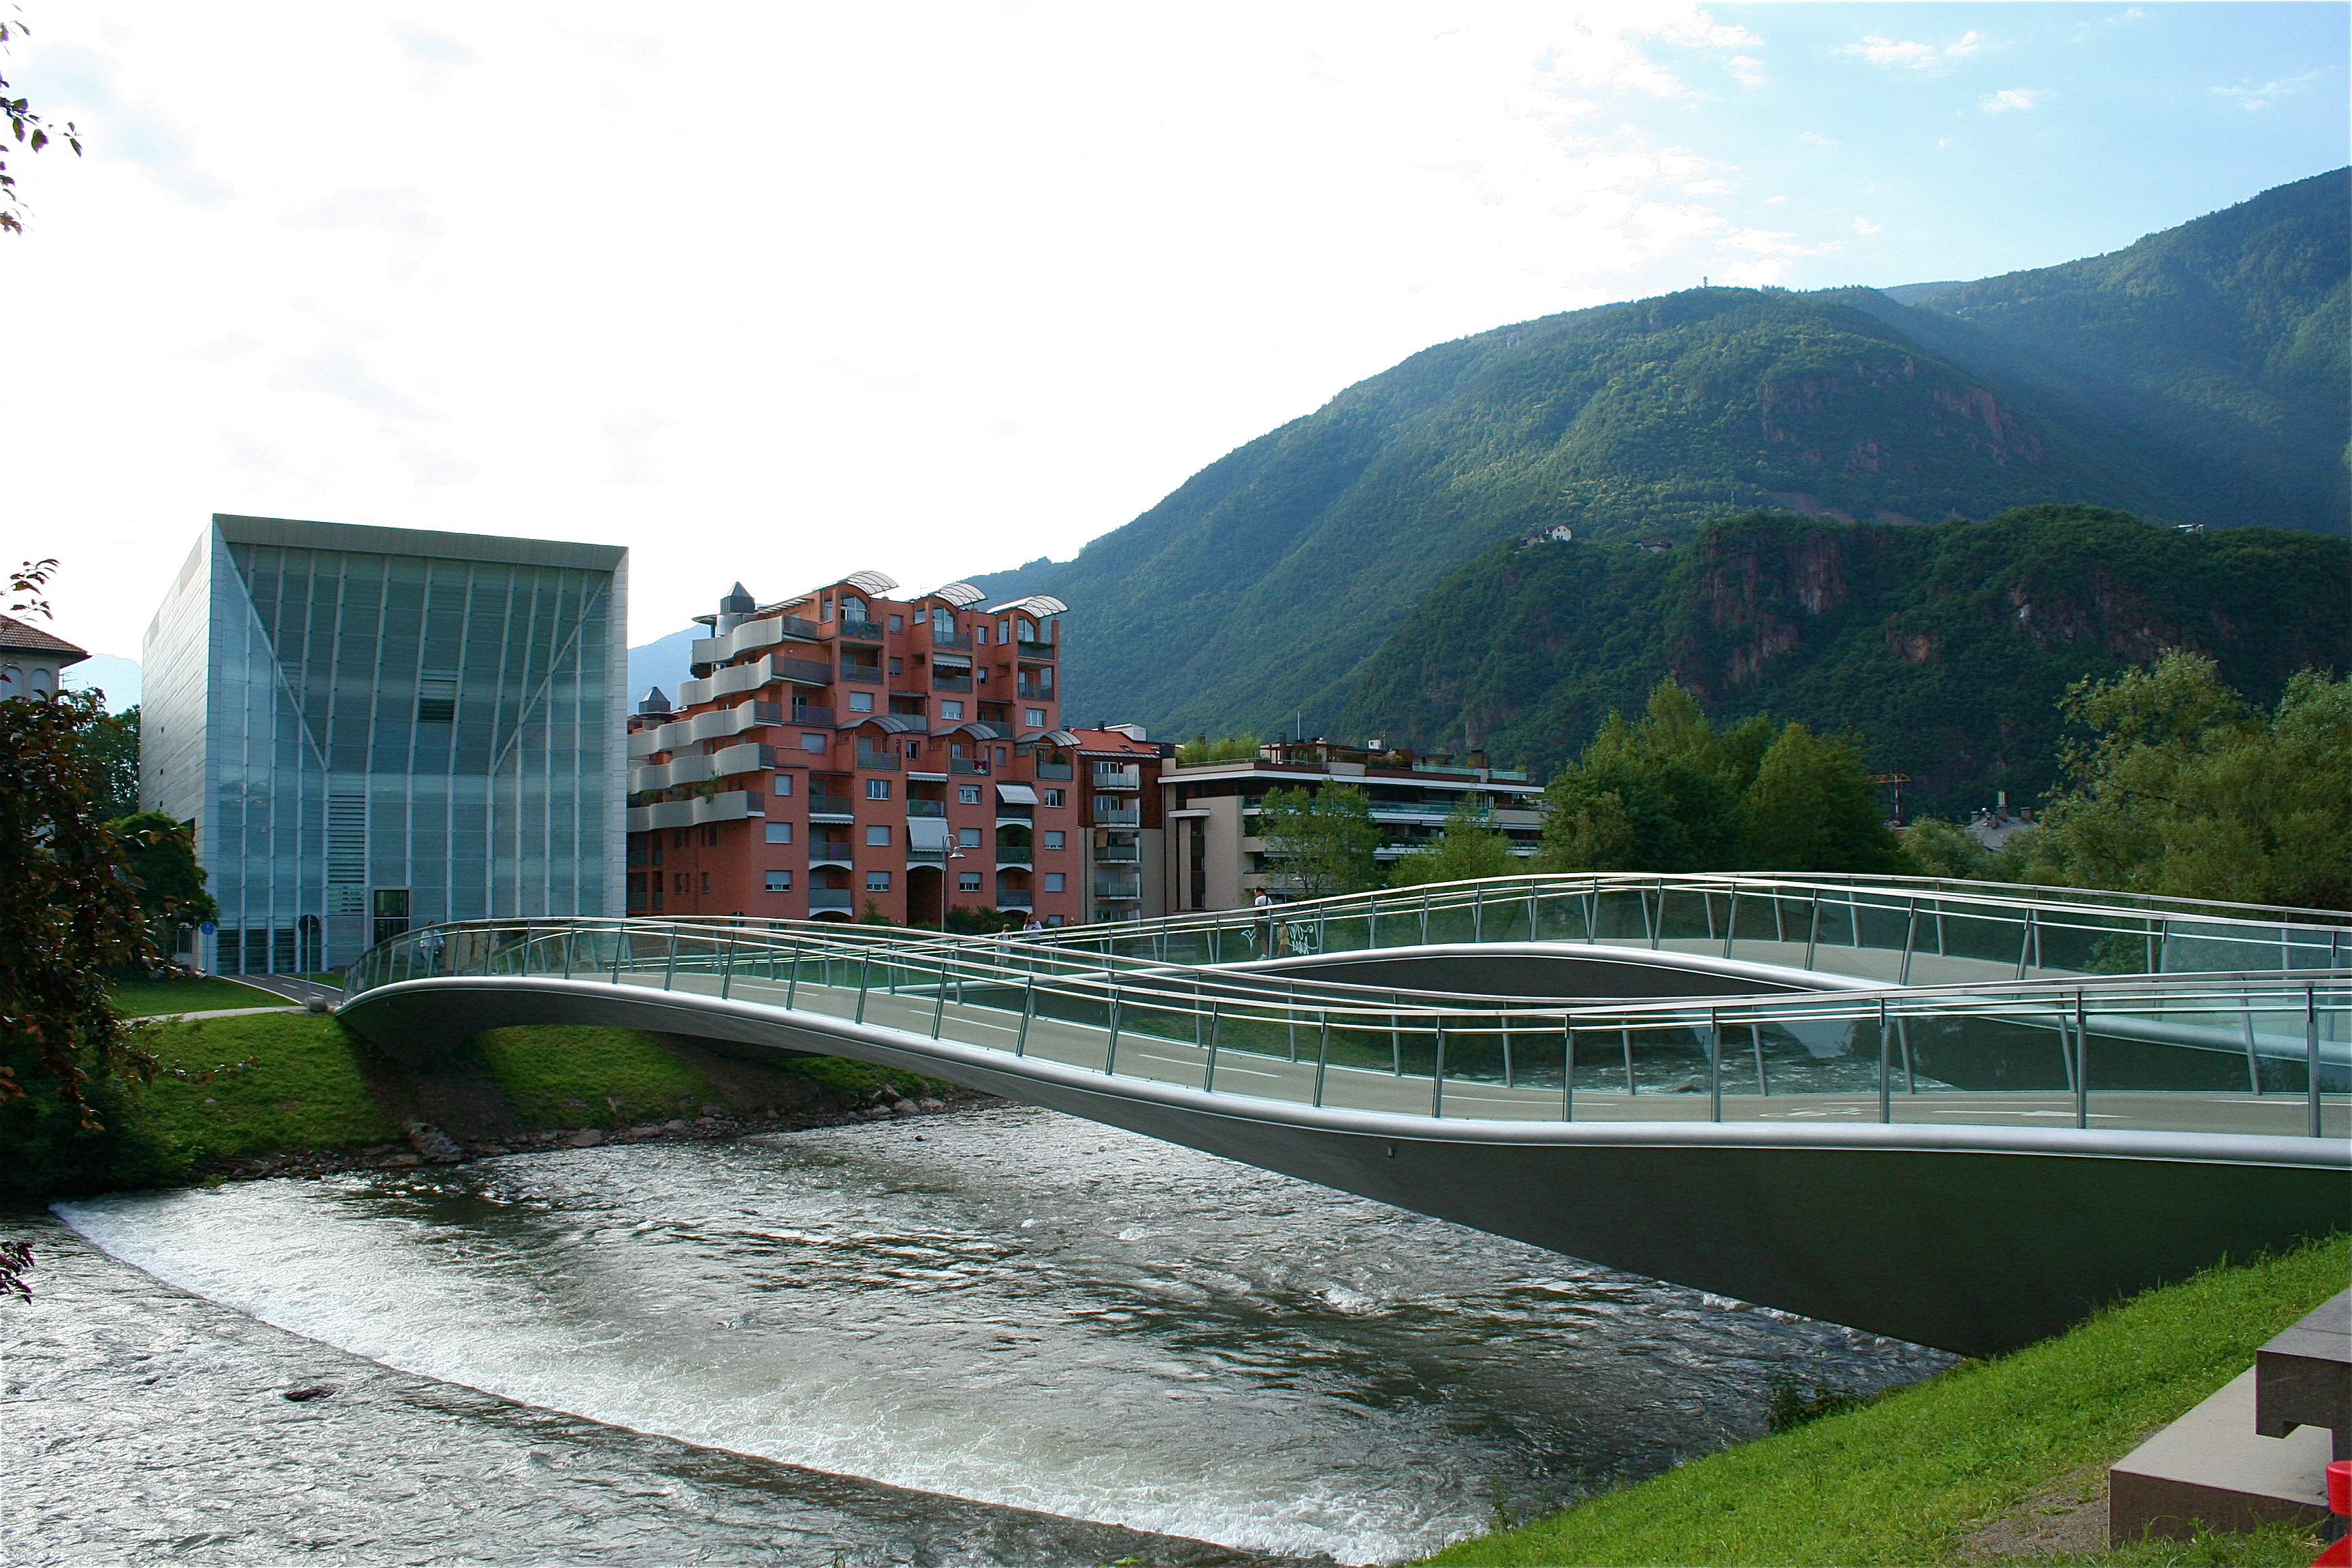 http://www.italyluxuryhotel.it/blog/wp-content/uploads/museion-bolzano.jpg